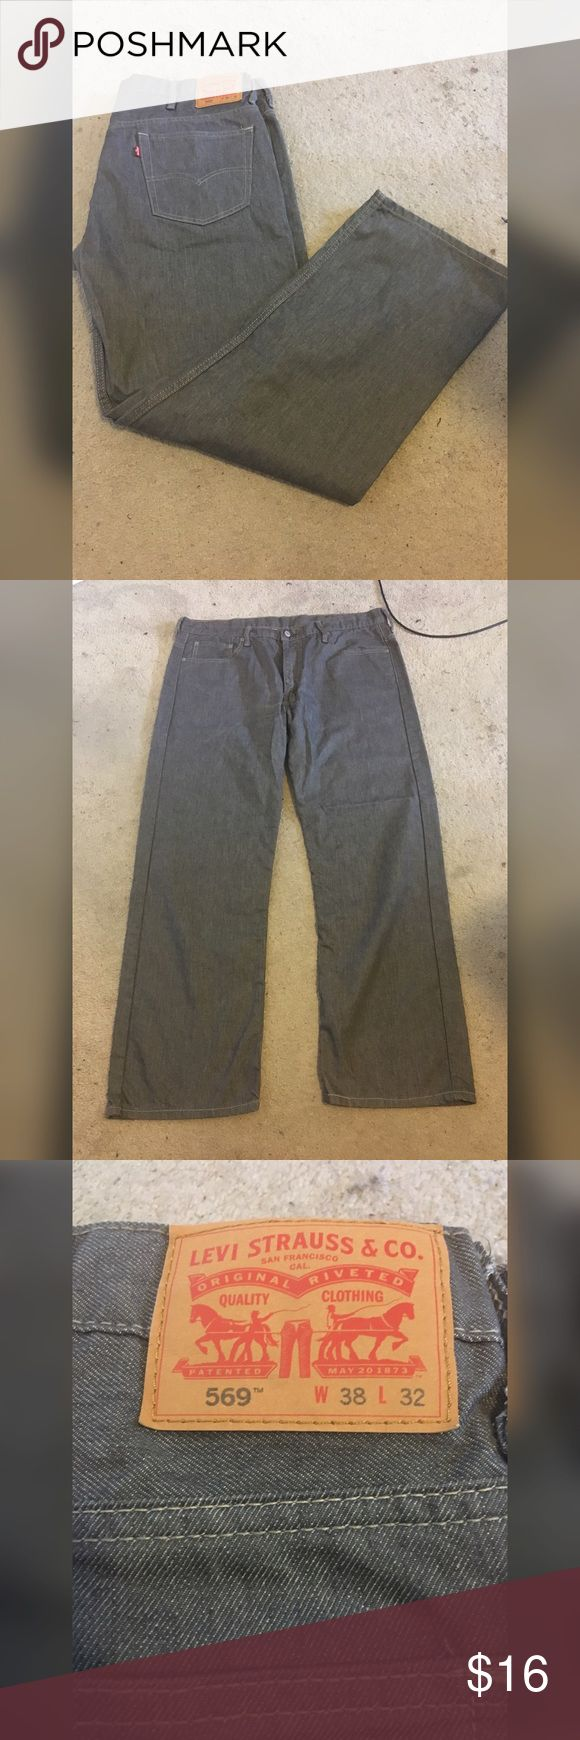 LEVIS 569 Grey denim wash W38 L30 Purchased at macys my bf worn them twice for dinner party but he no longer can fit em so selling to clear space and money fit true to size has cotton elastane relaxed fit Levi's Jeans Relaxed